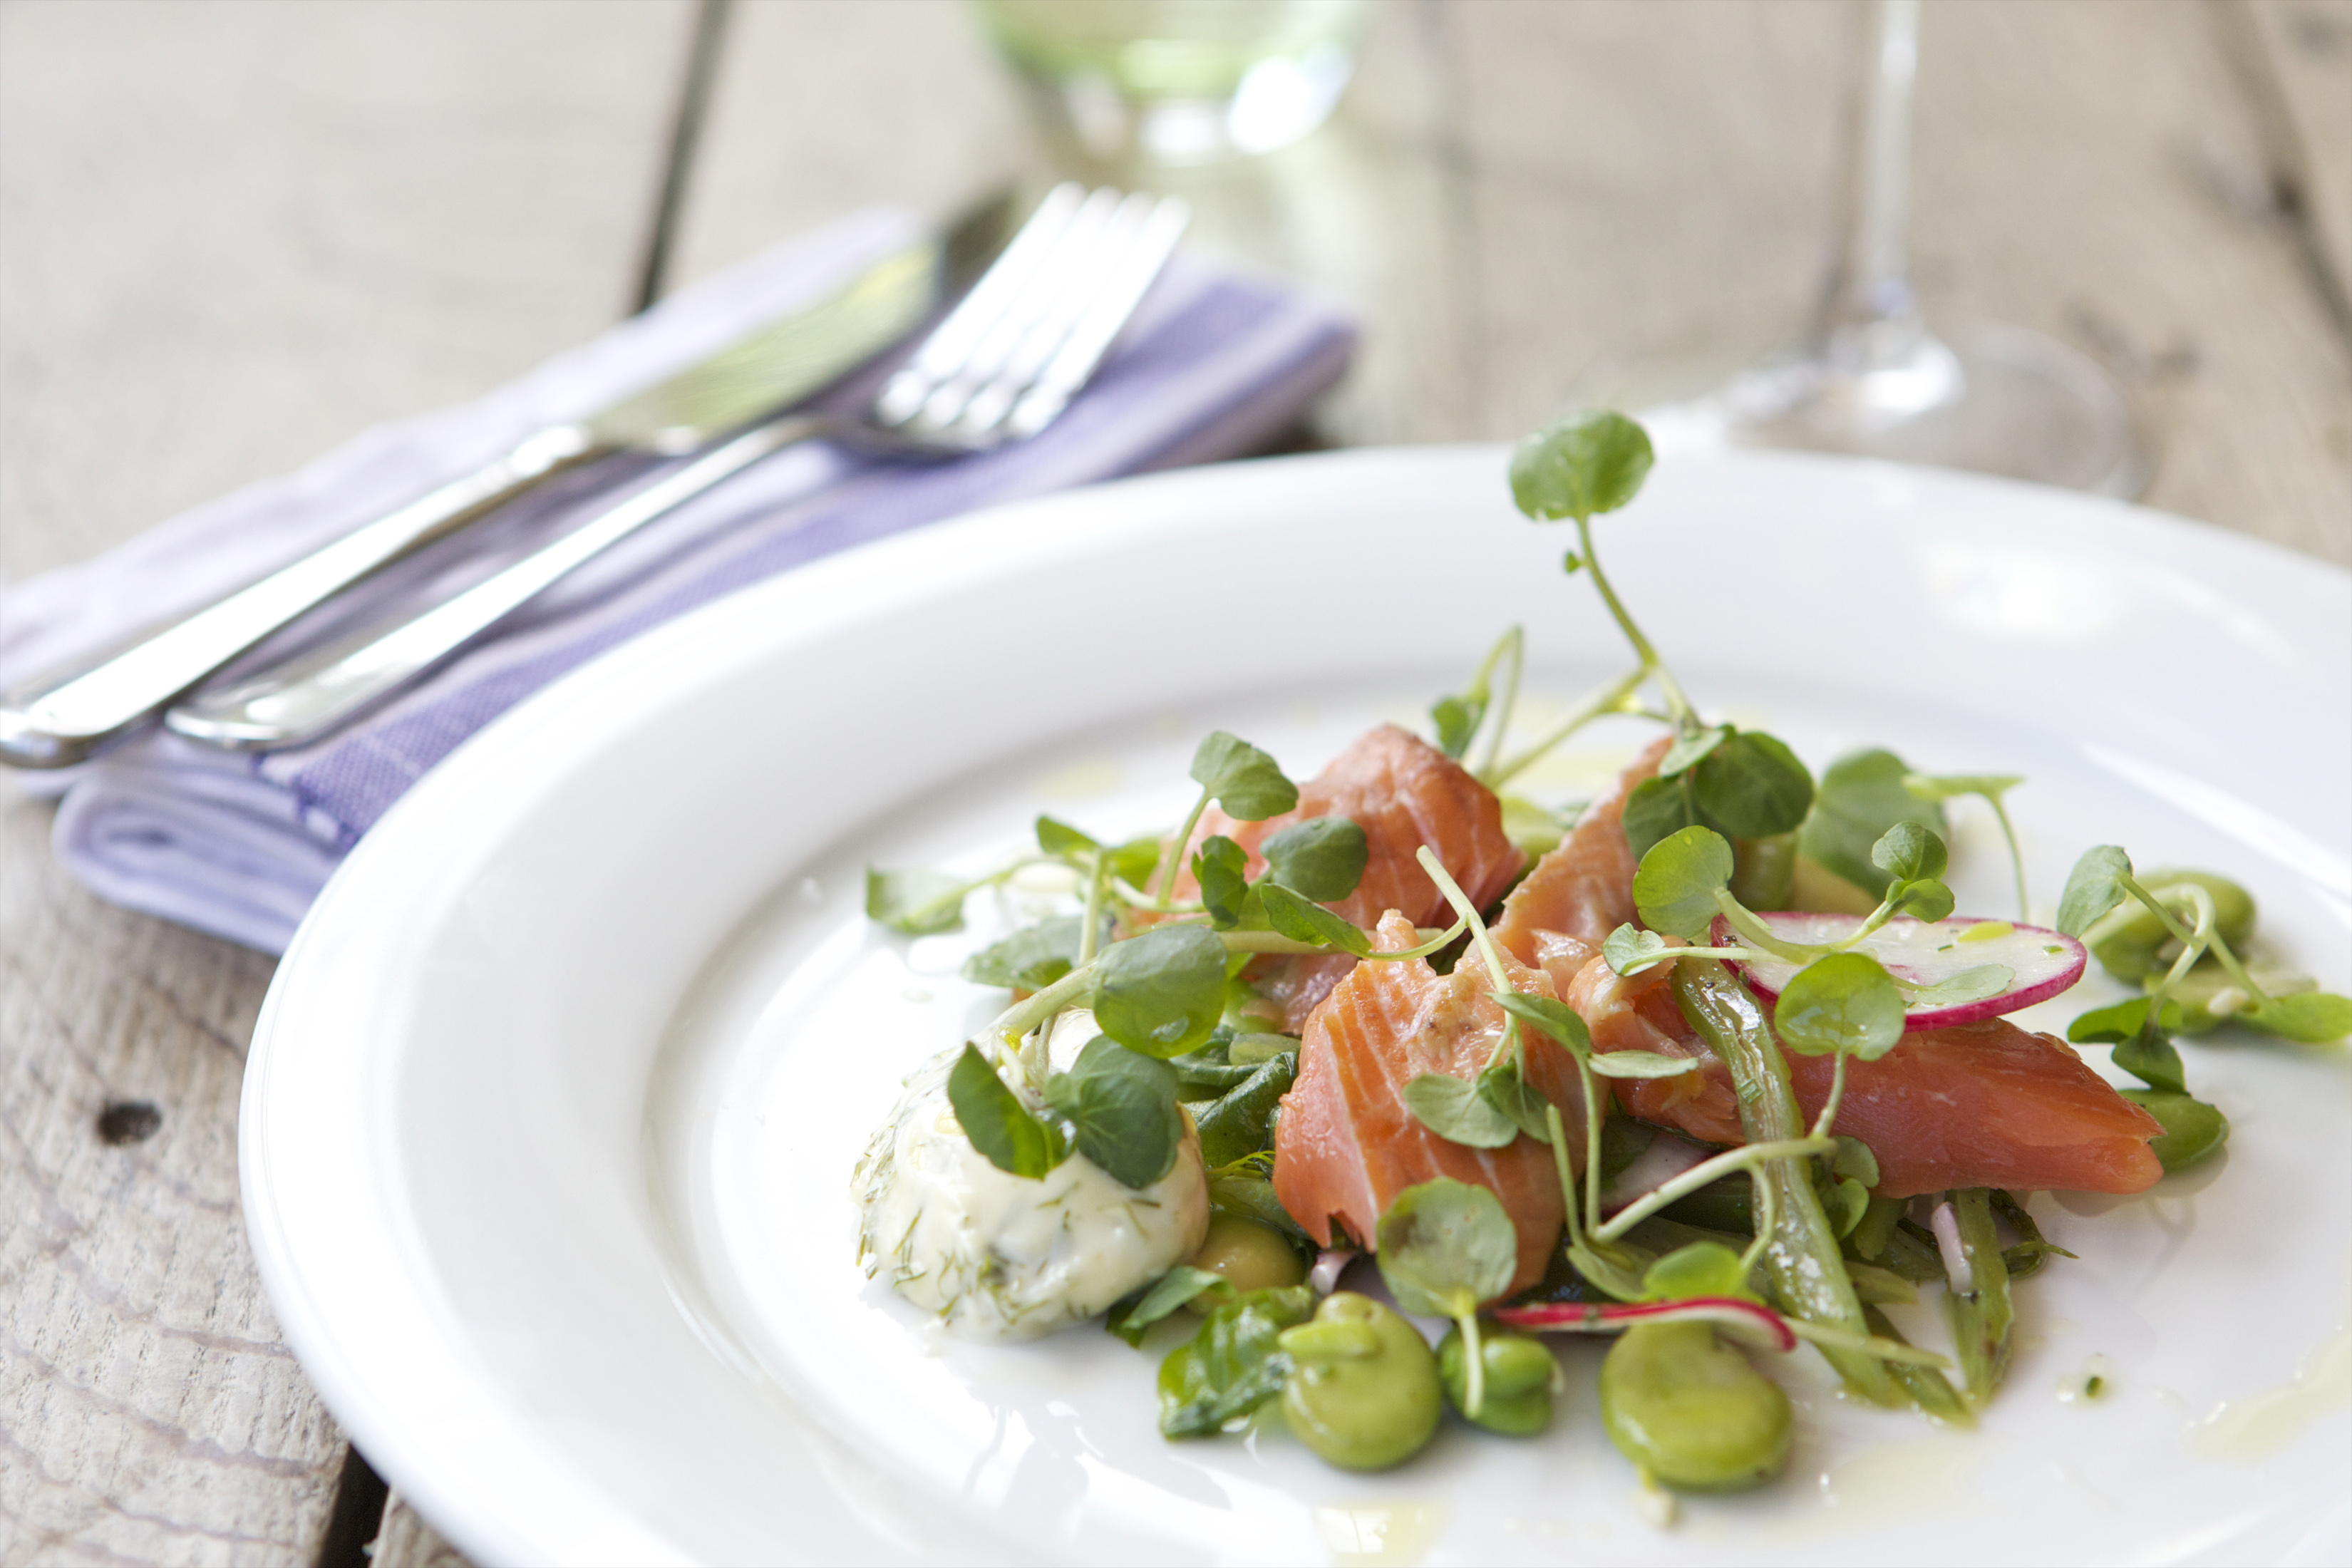 Top 10 Gastro Pubs in the South West - Top 10's